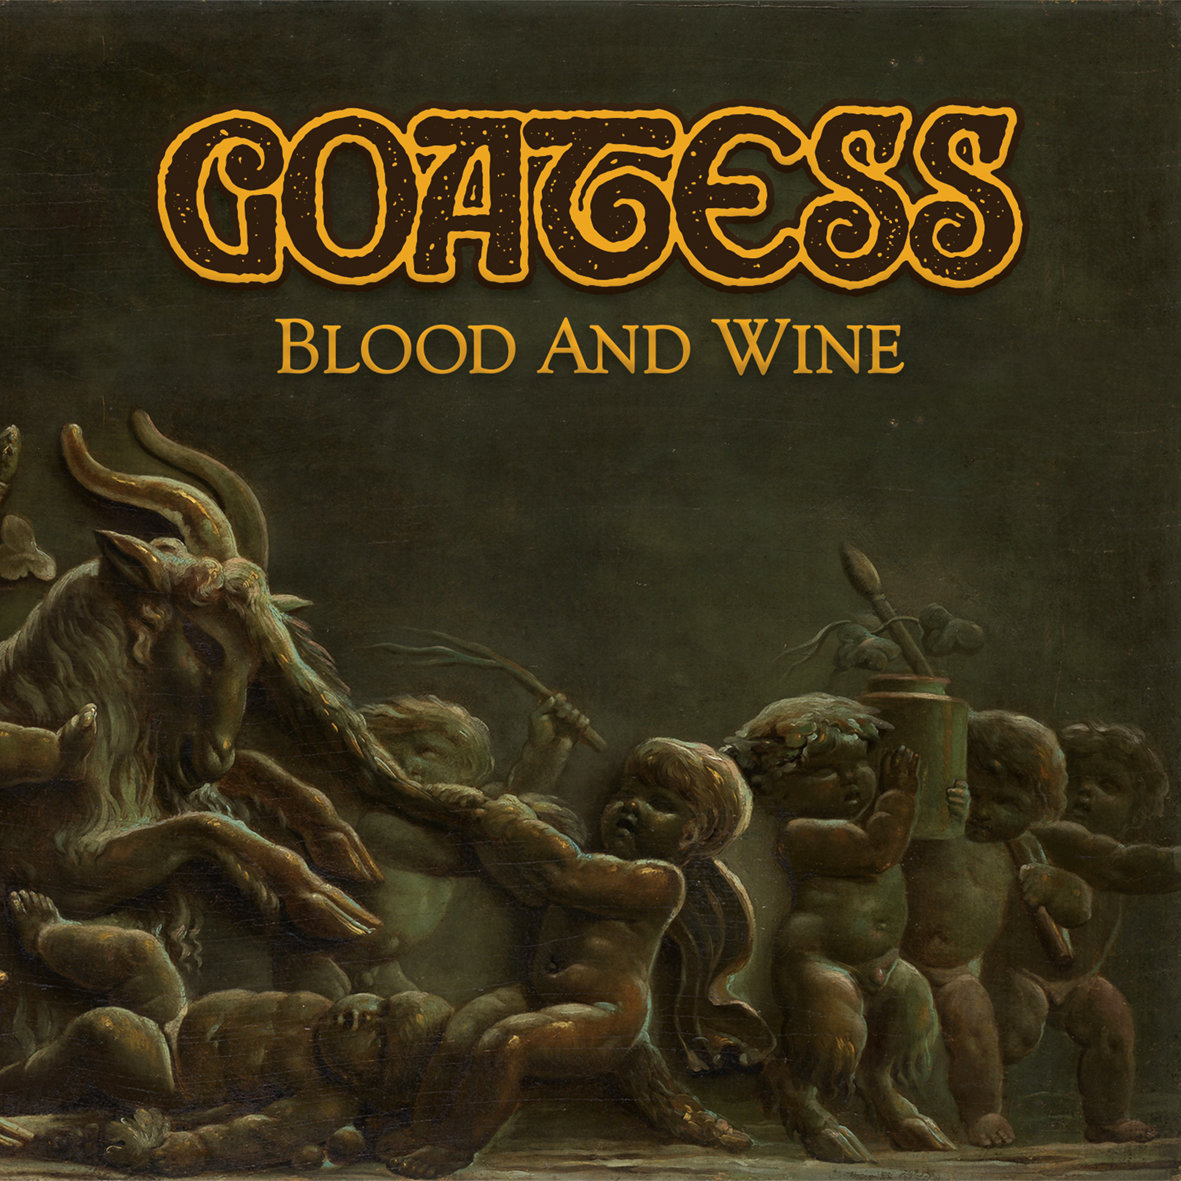 Metal (Heavy,Death,Doom,Thrash,Black,Sludge,Stoner......) - Página 2 Goatess-Blood-and-Wine